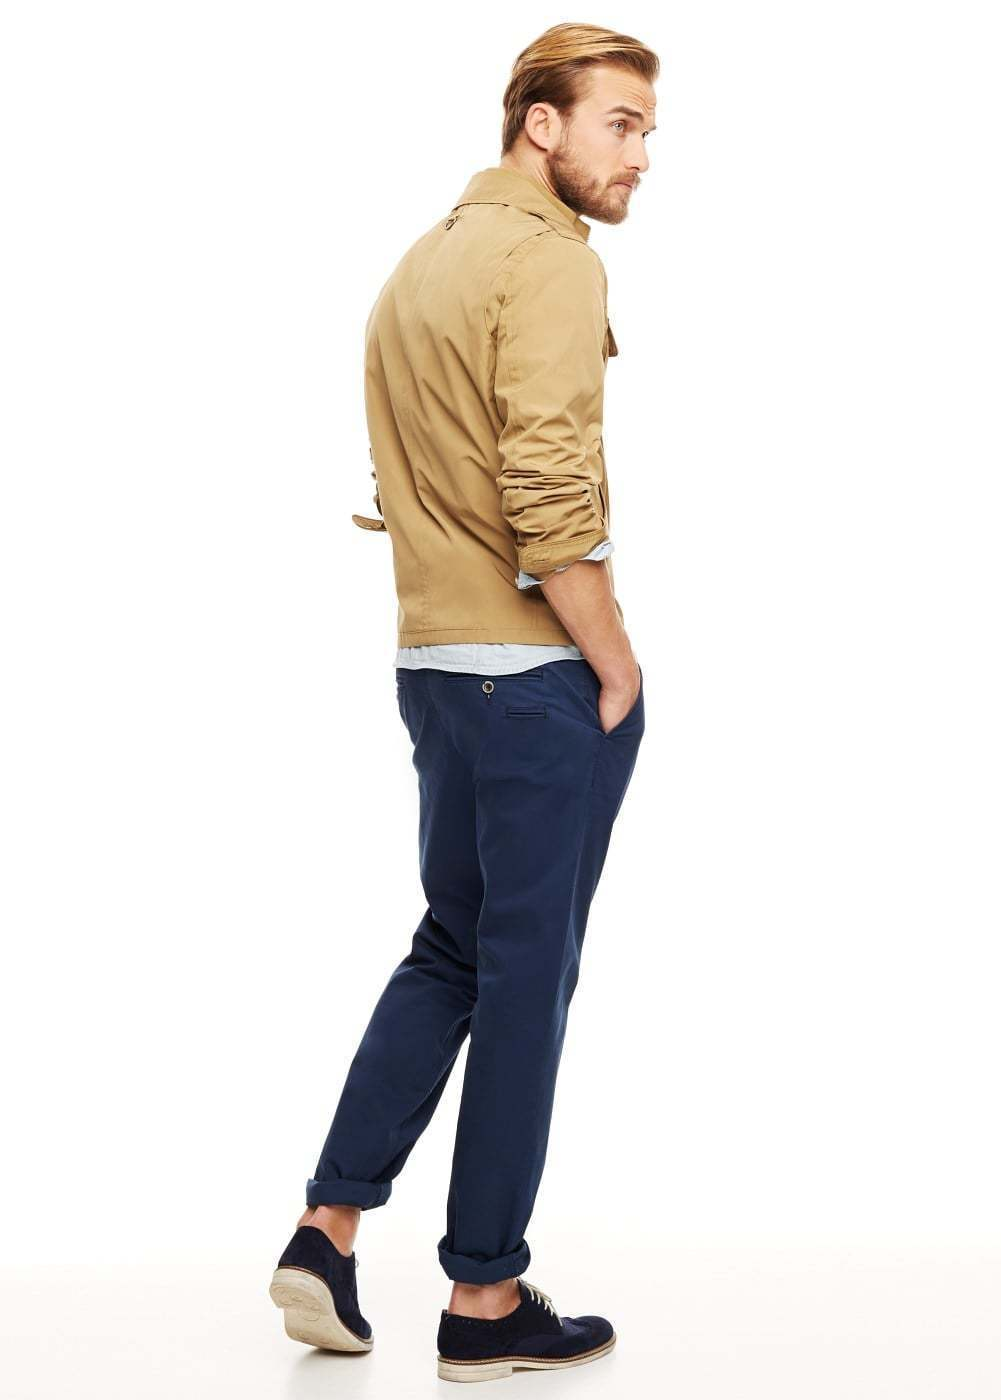 What color shoes with khaki pants and navy blue shirt for Dress shirts that go with jeans